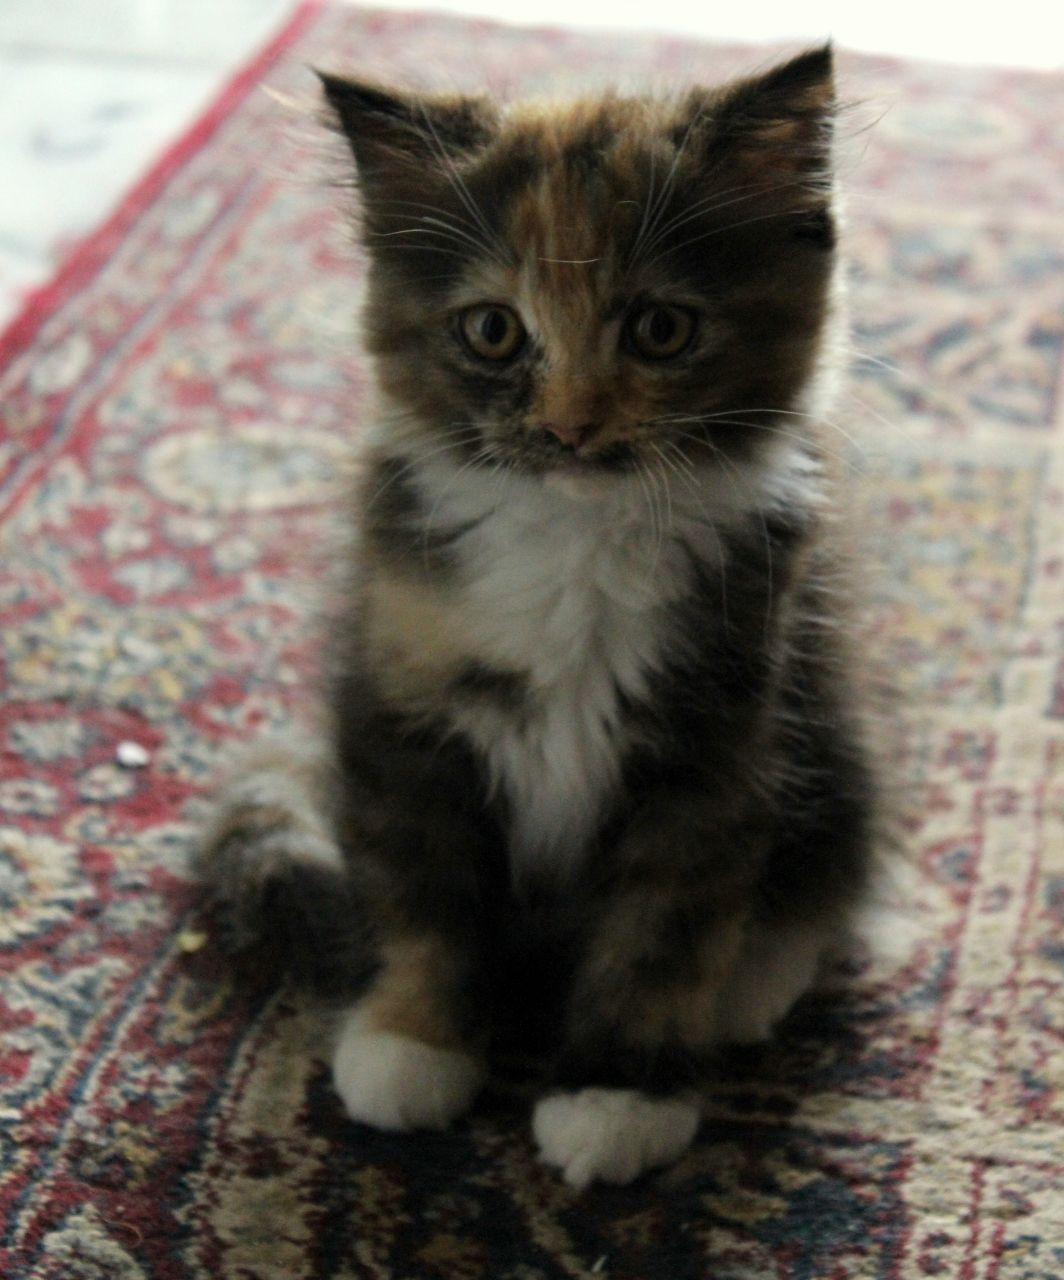 Cute As Can Be Kittens Cutest Cute Kittens For Sale I Love Cats